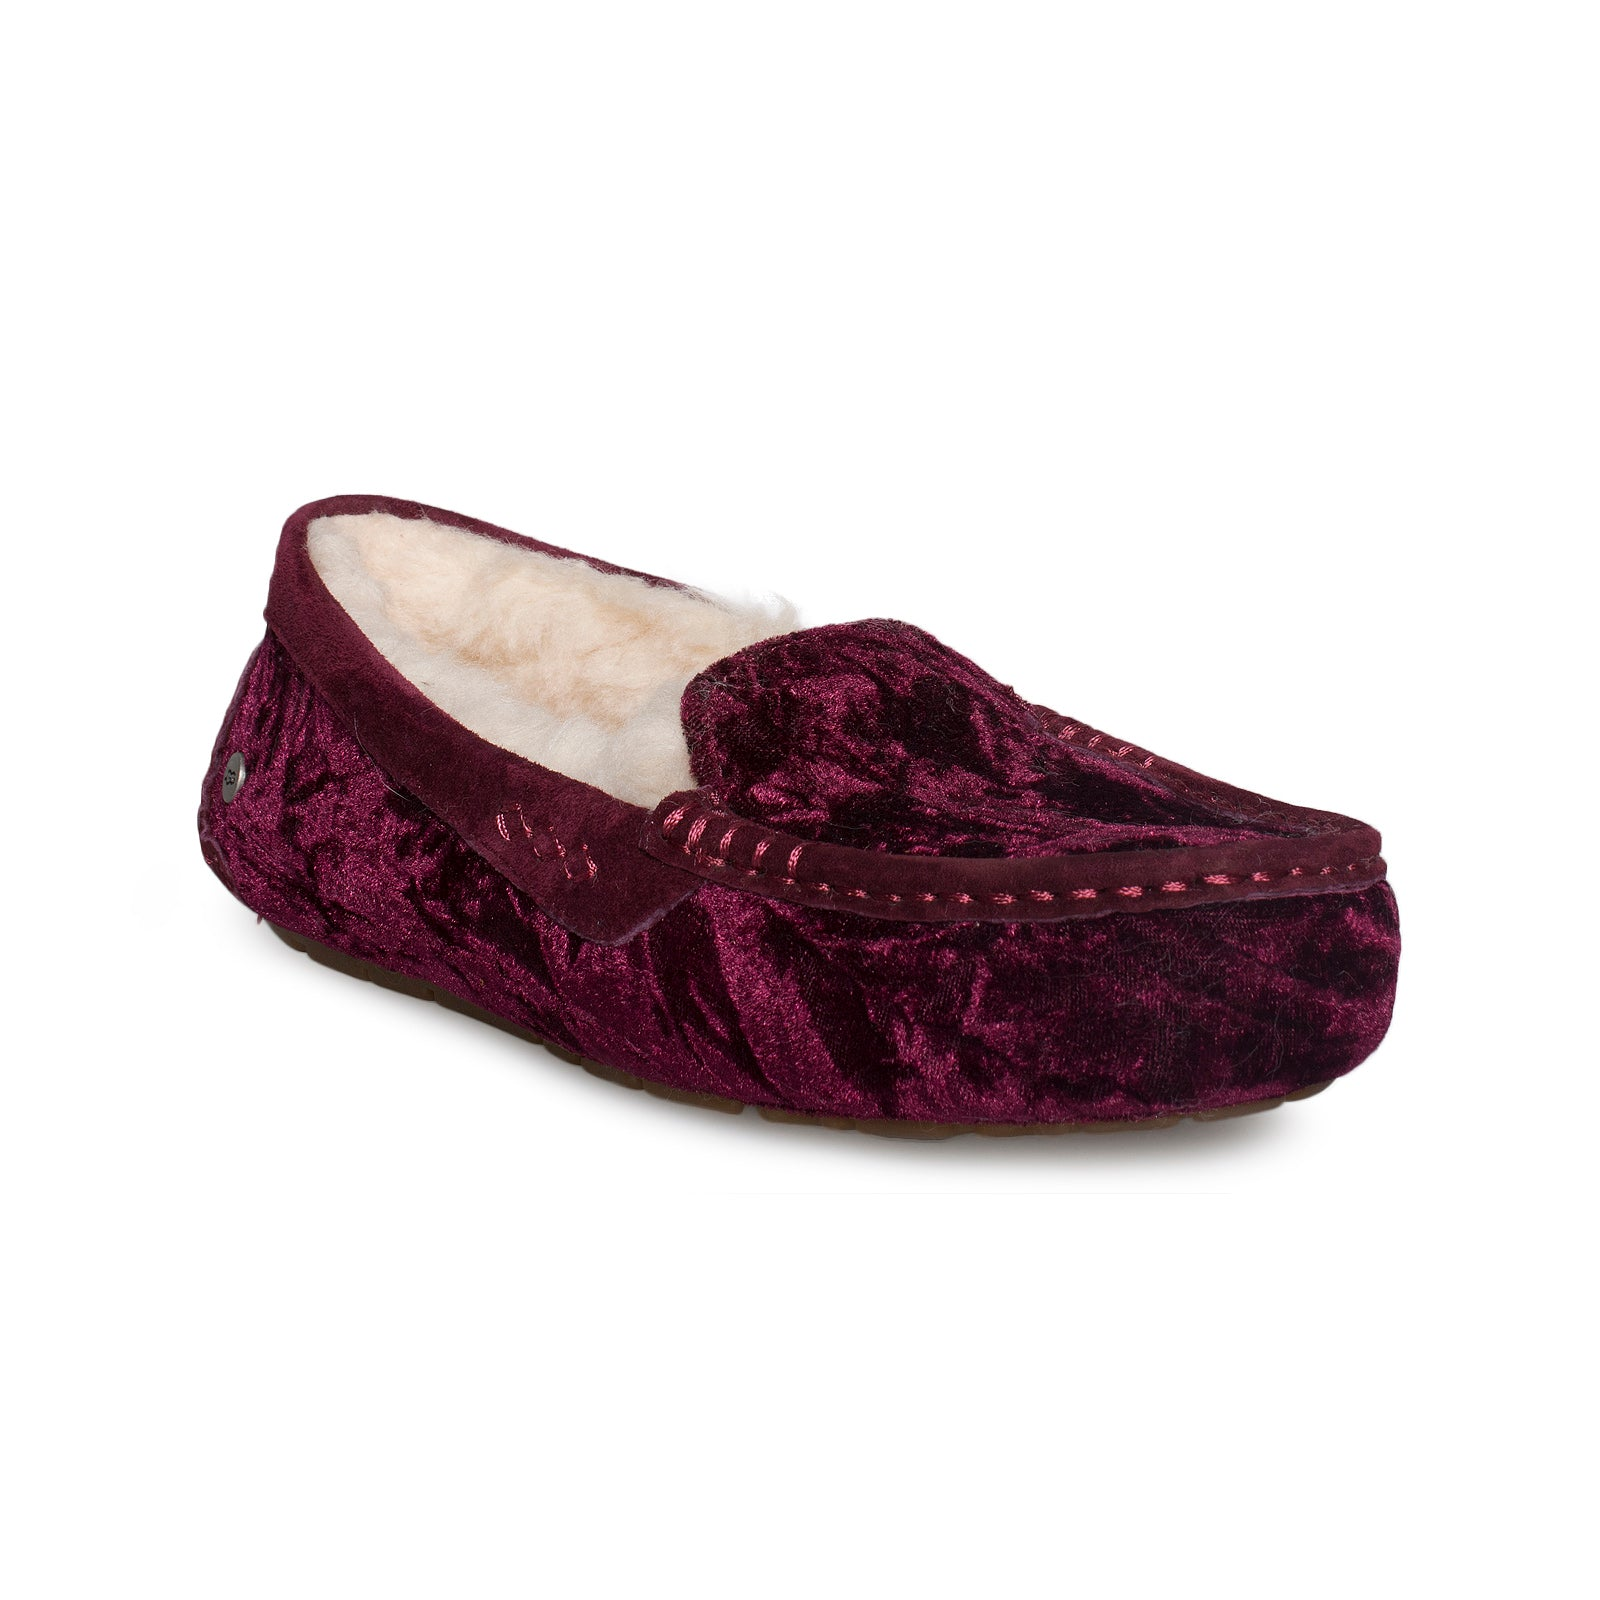 cff0a96a3be UGG Ansley Crushed Velvet Fig Slippers